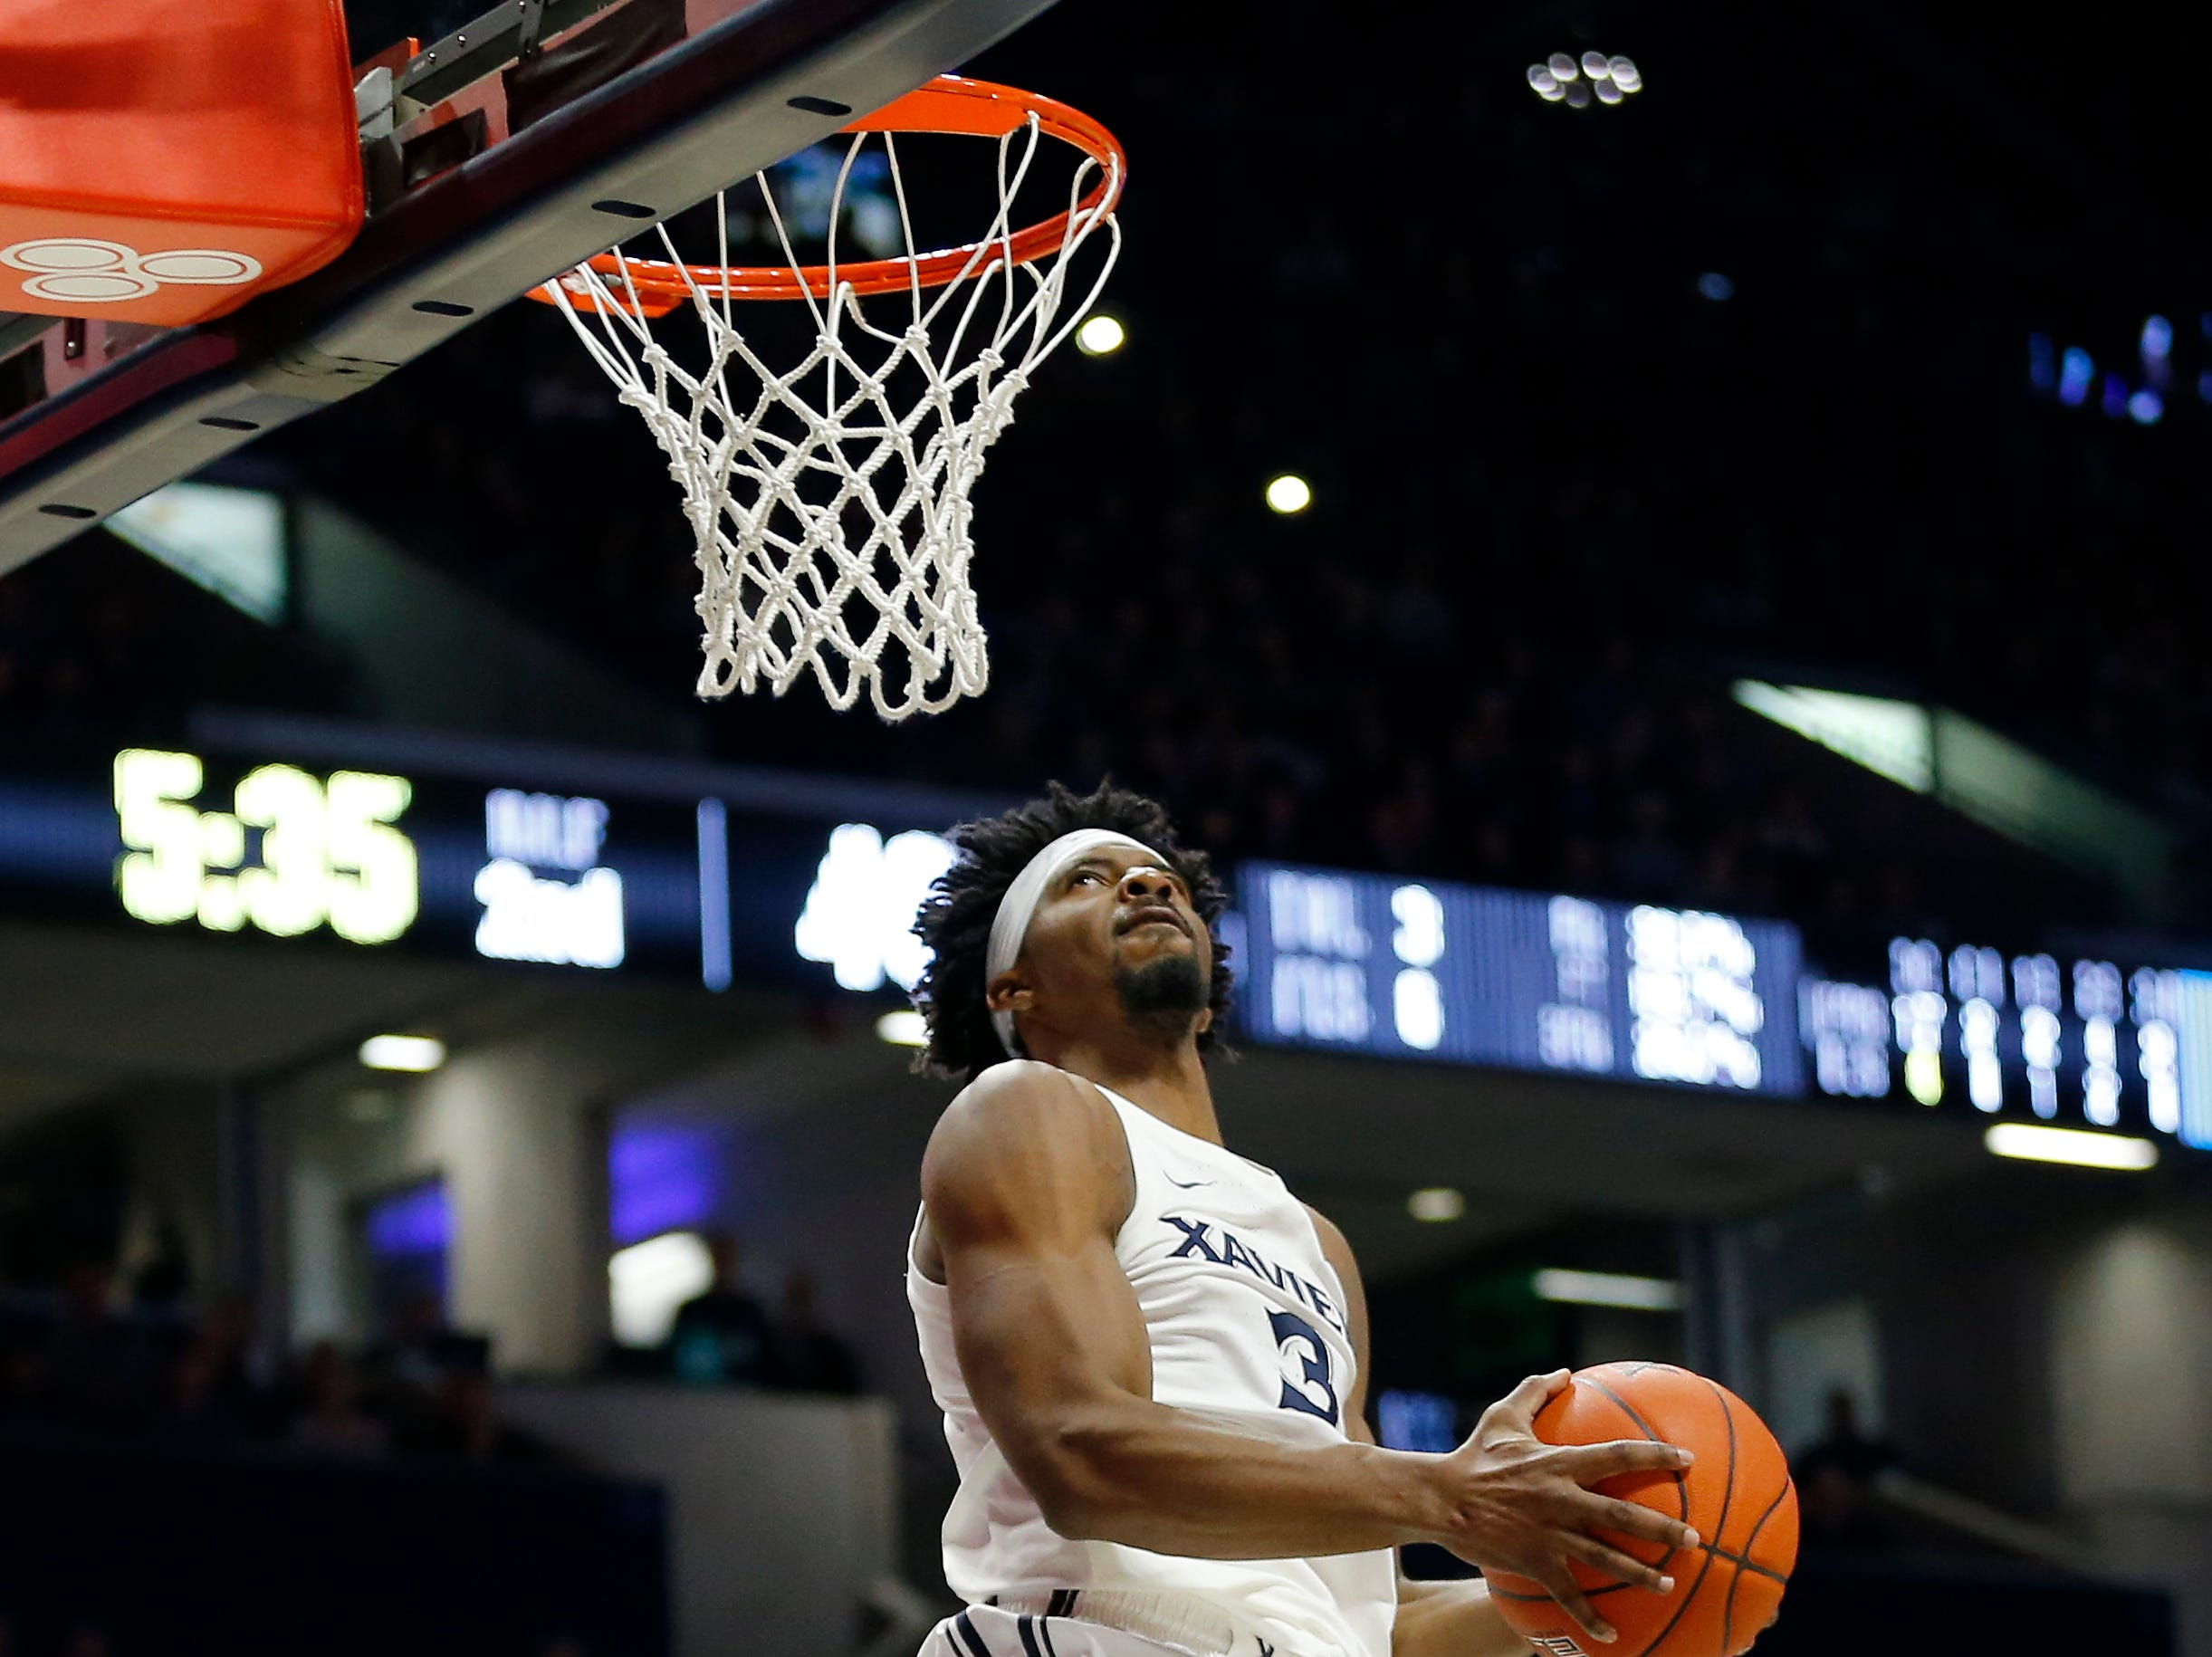 Xavier Musketeers guard Quentin Goodin goes up for a reverse dunk in the second half.